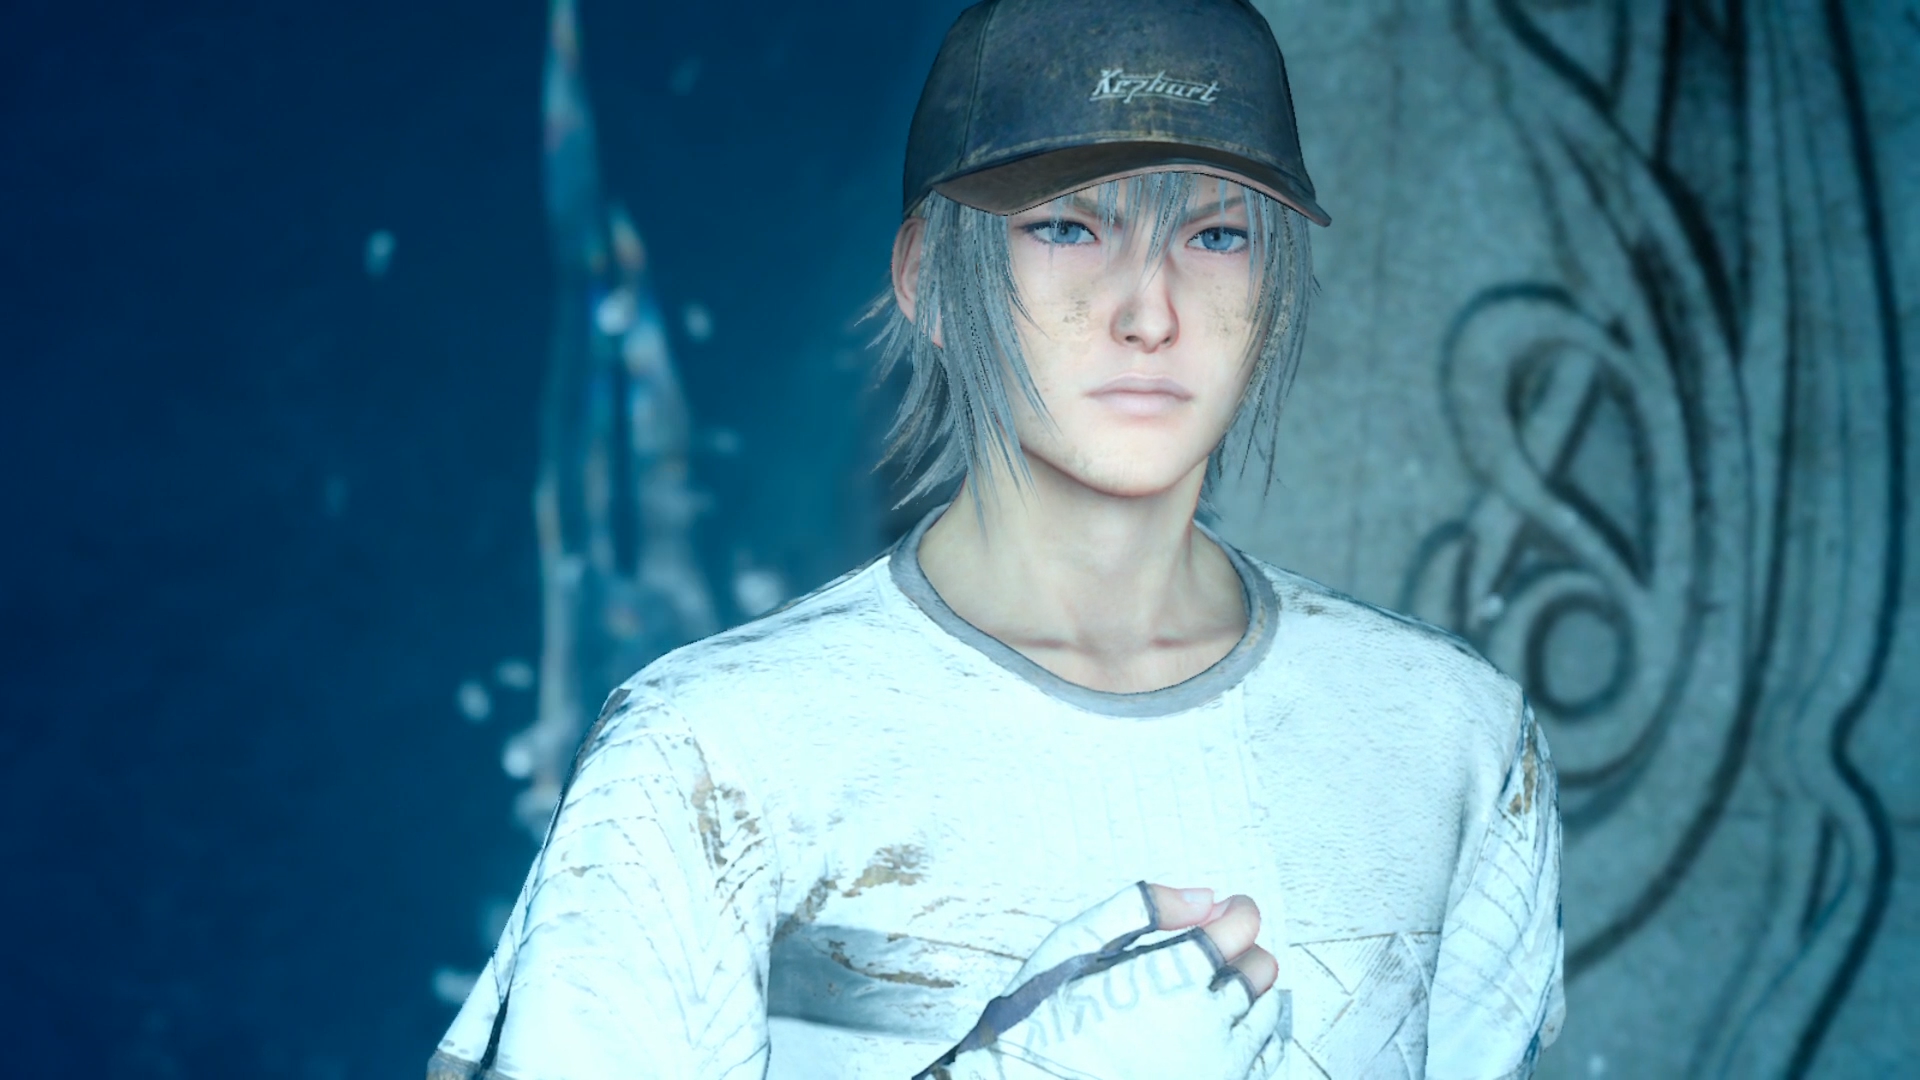 All the costumes/outfits for Noctis in FF15  where to find them